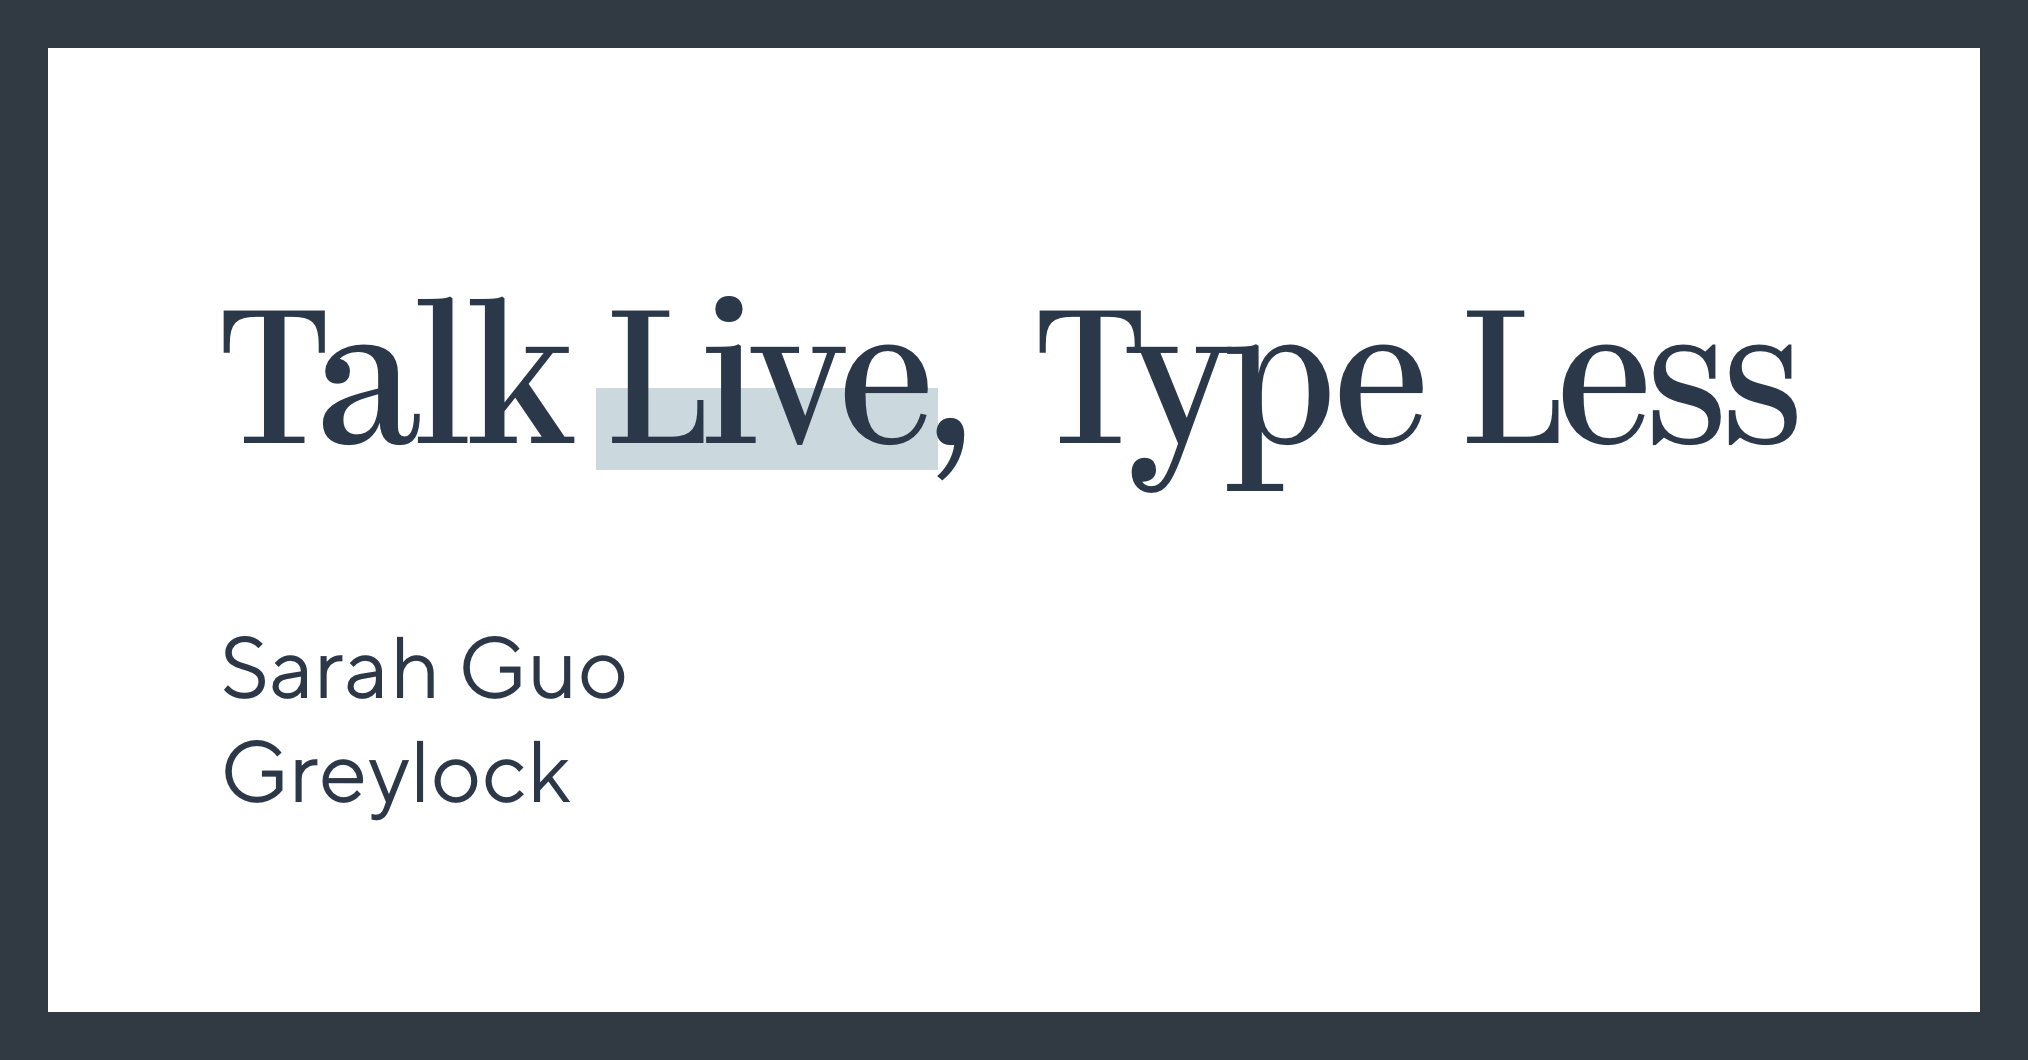 Talk Live, Type Less